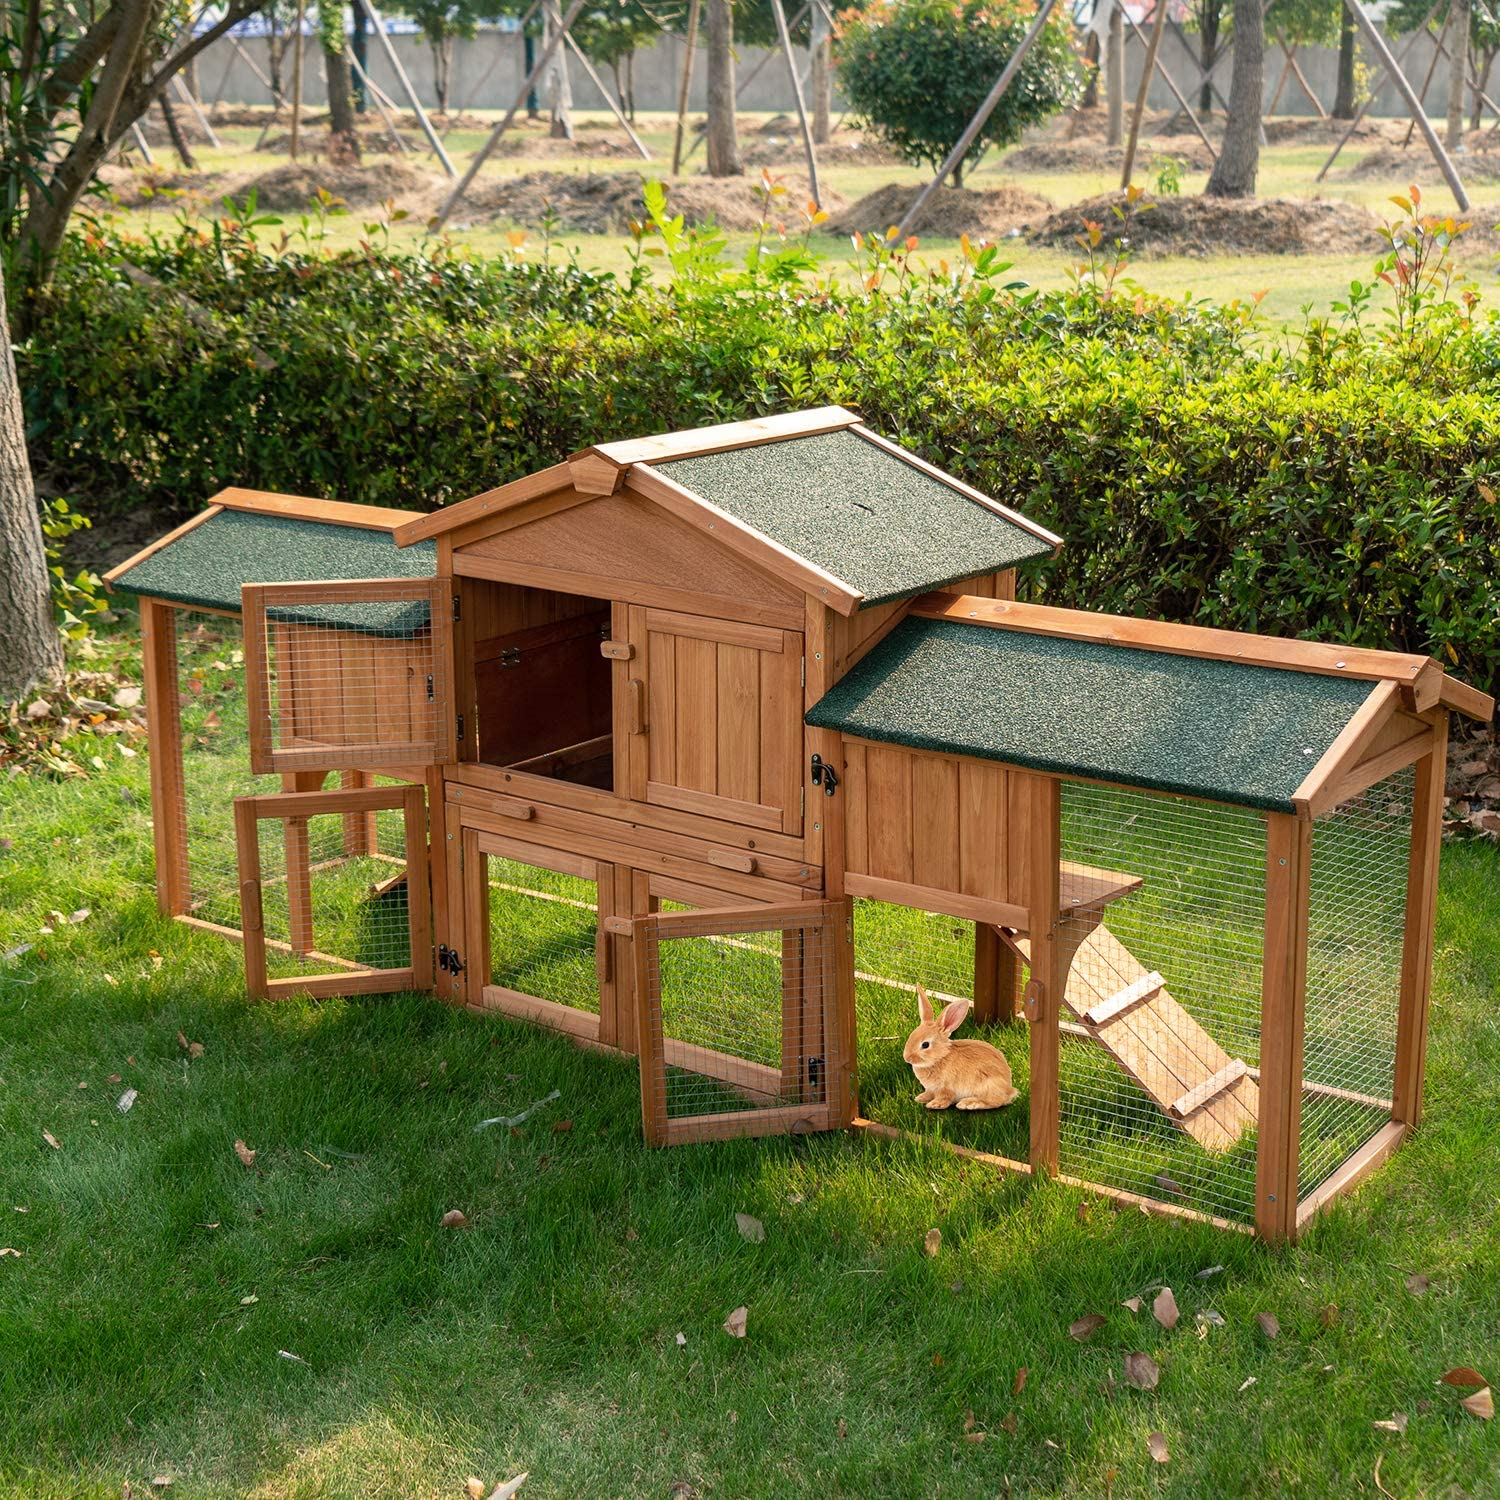 Buy Rabbit Hutch Bunny Cage with Pull Out Tray Outdoor Wooden ...